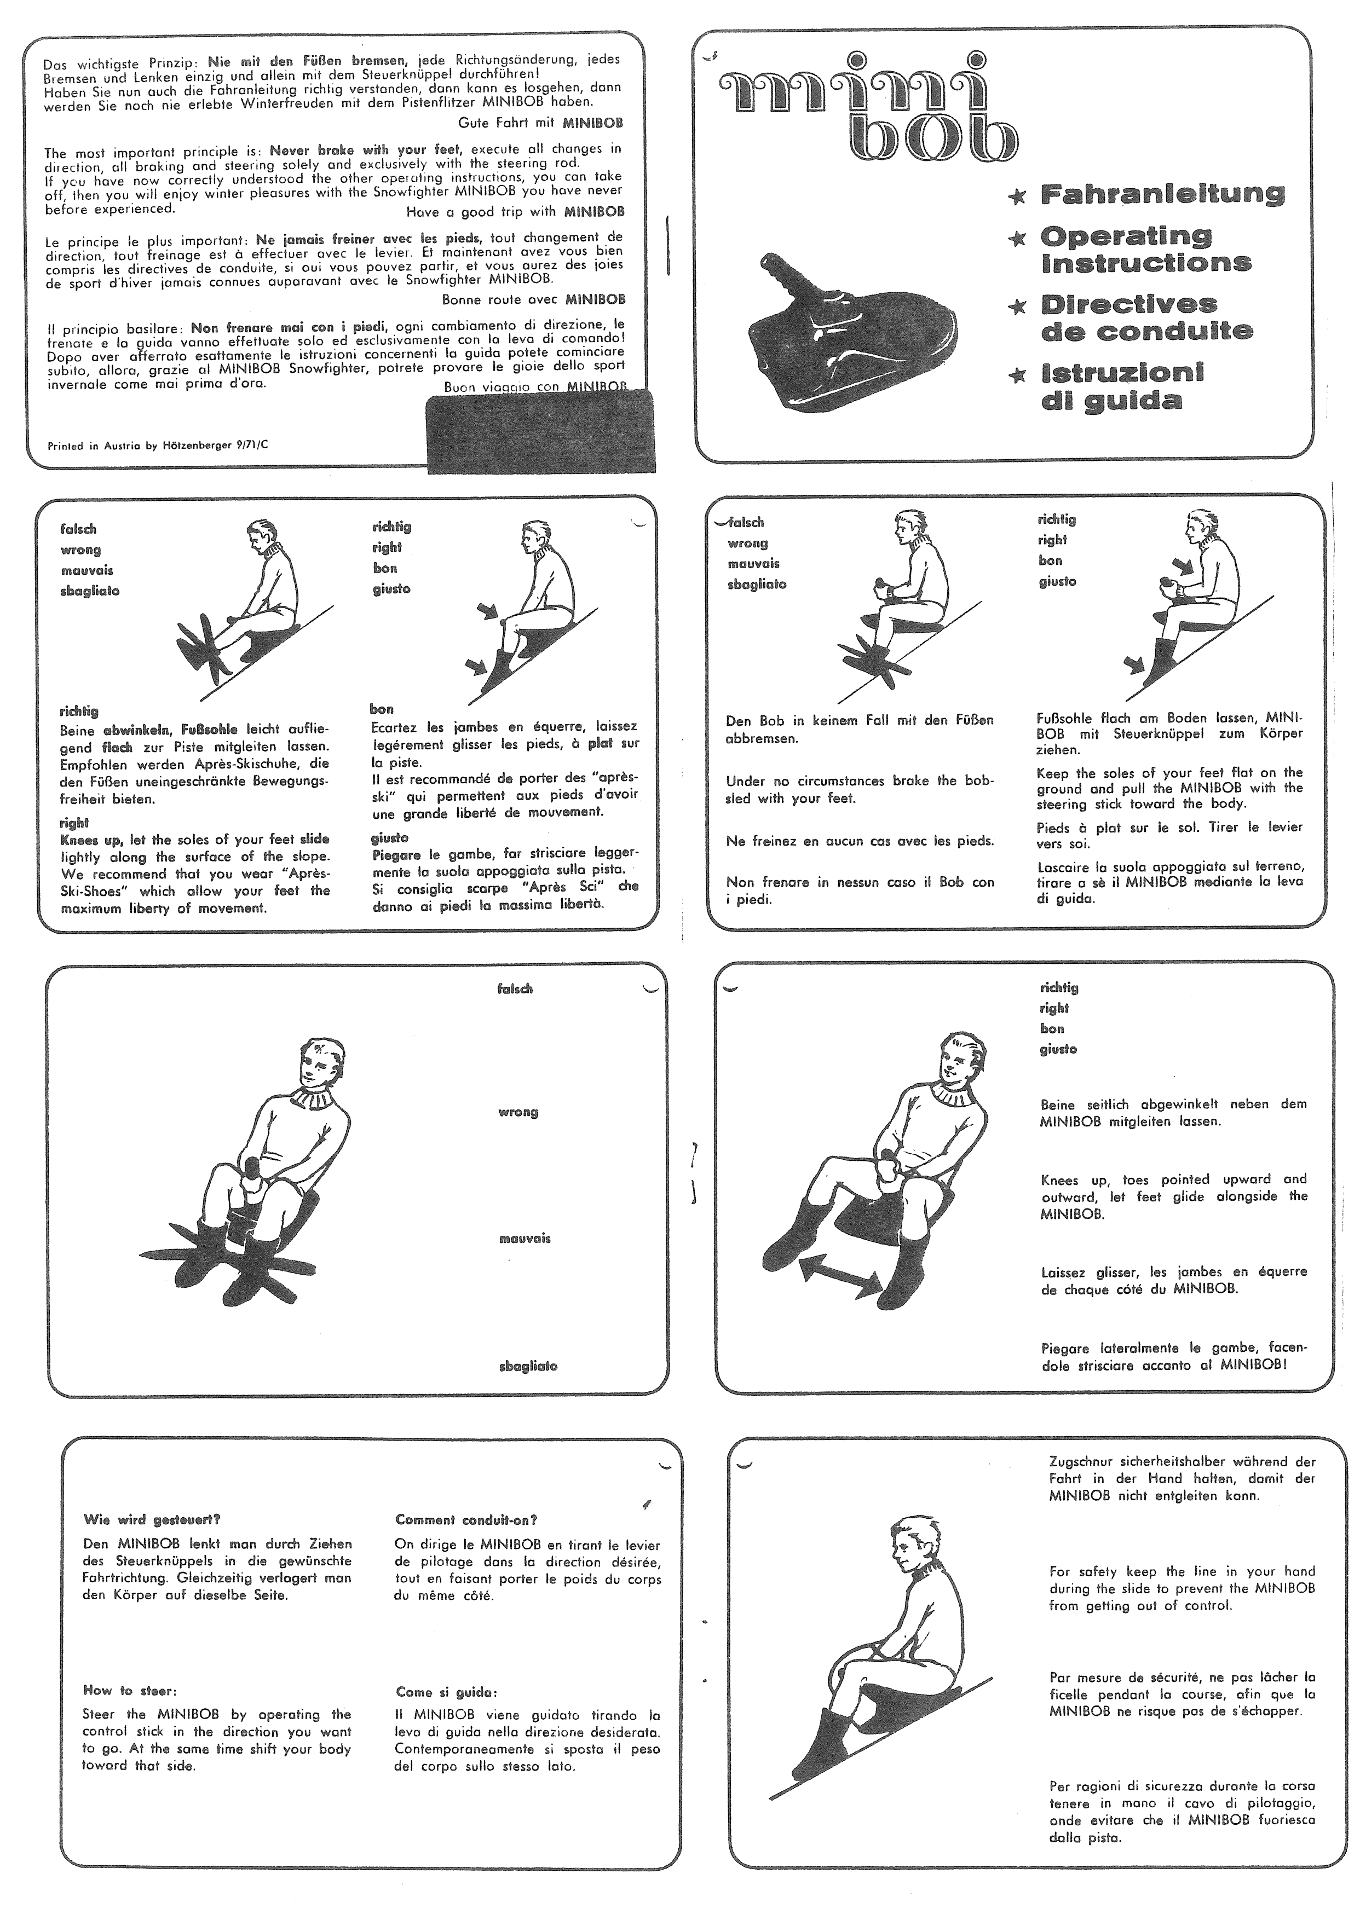 Historical driving instructions from 1970